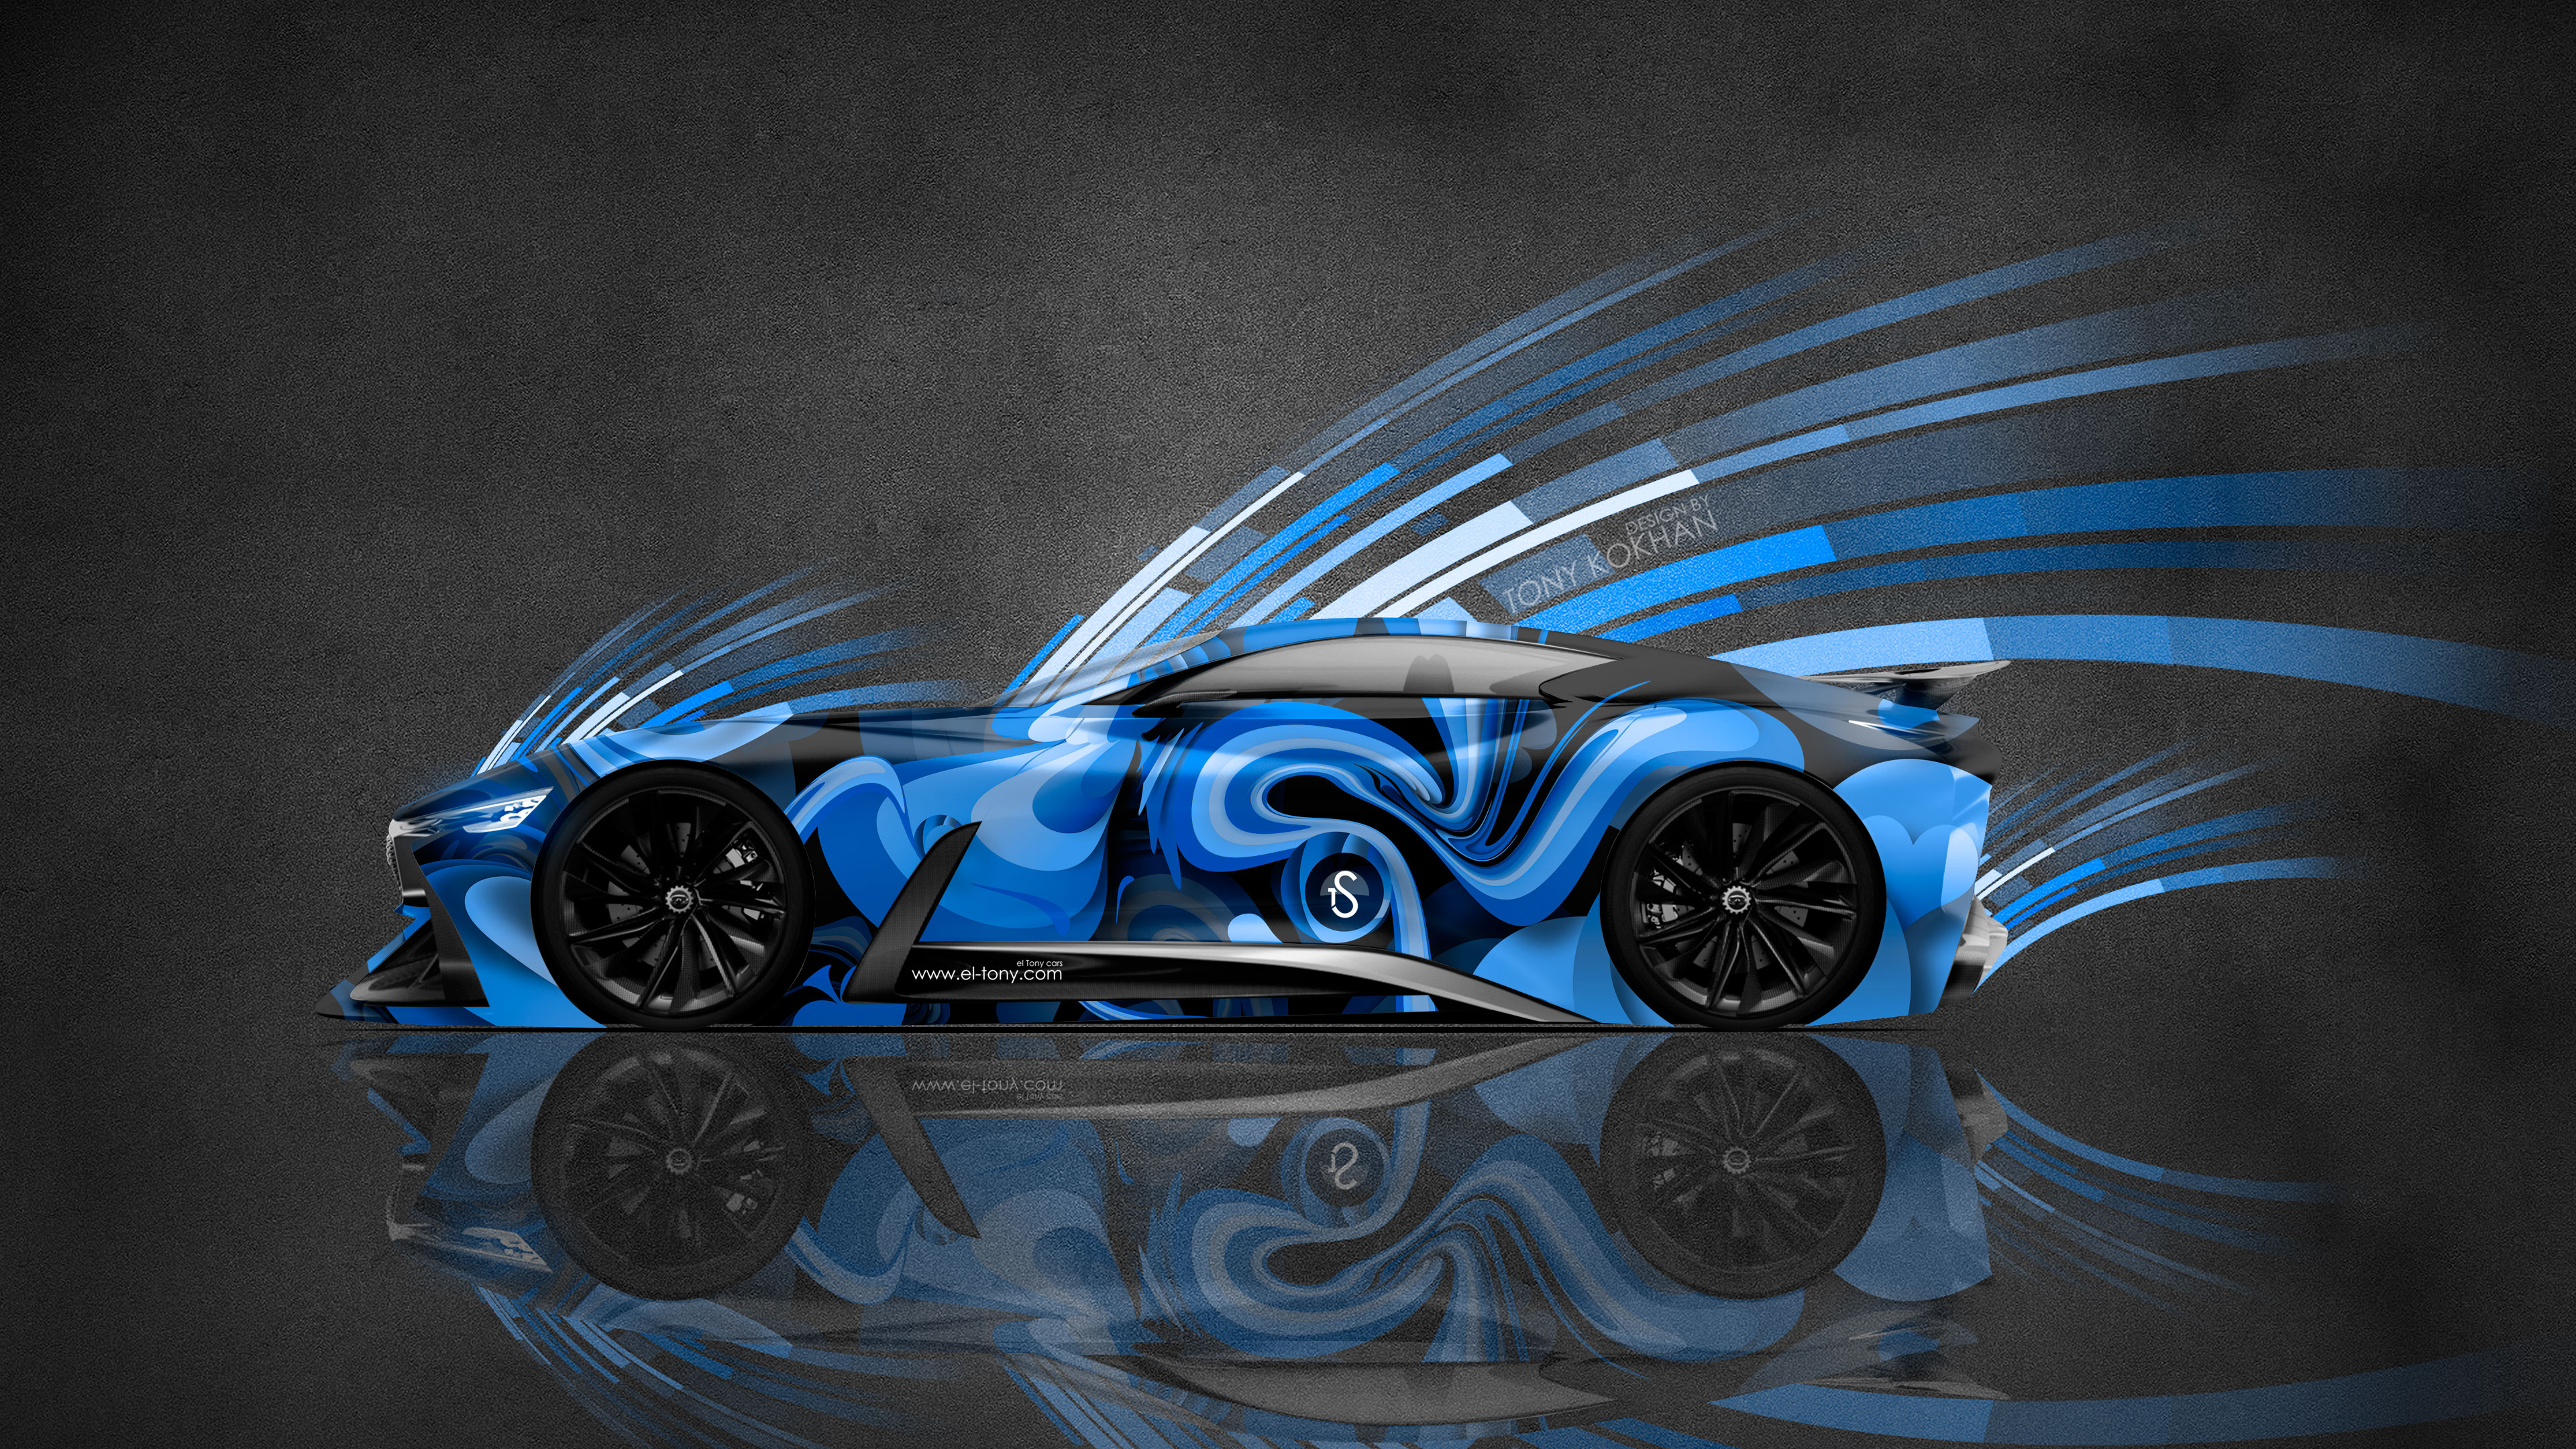 4k Infiniti Vision Gran Turismo Super Abstract Aerography